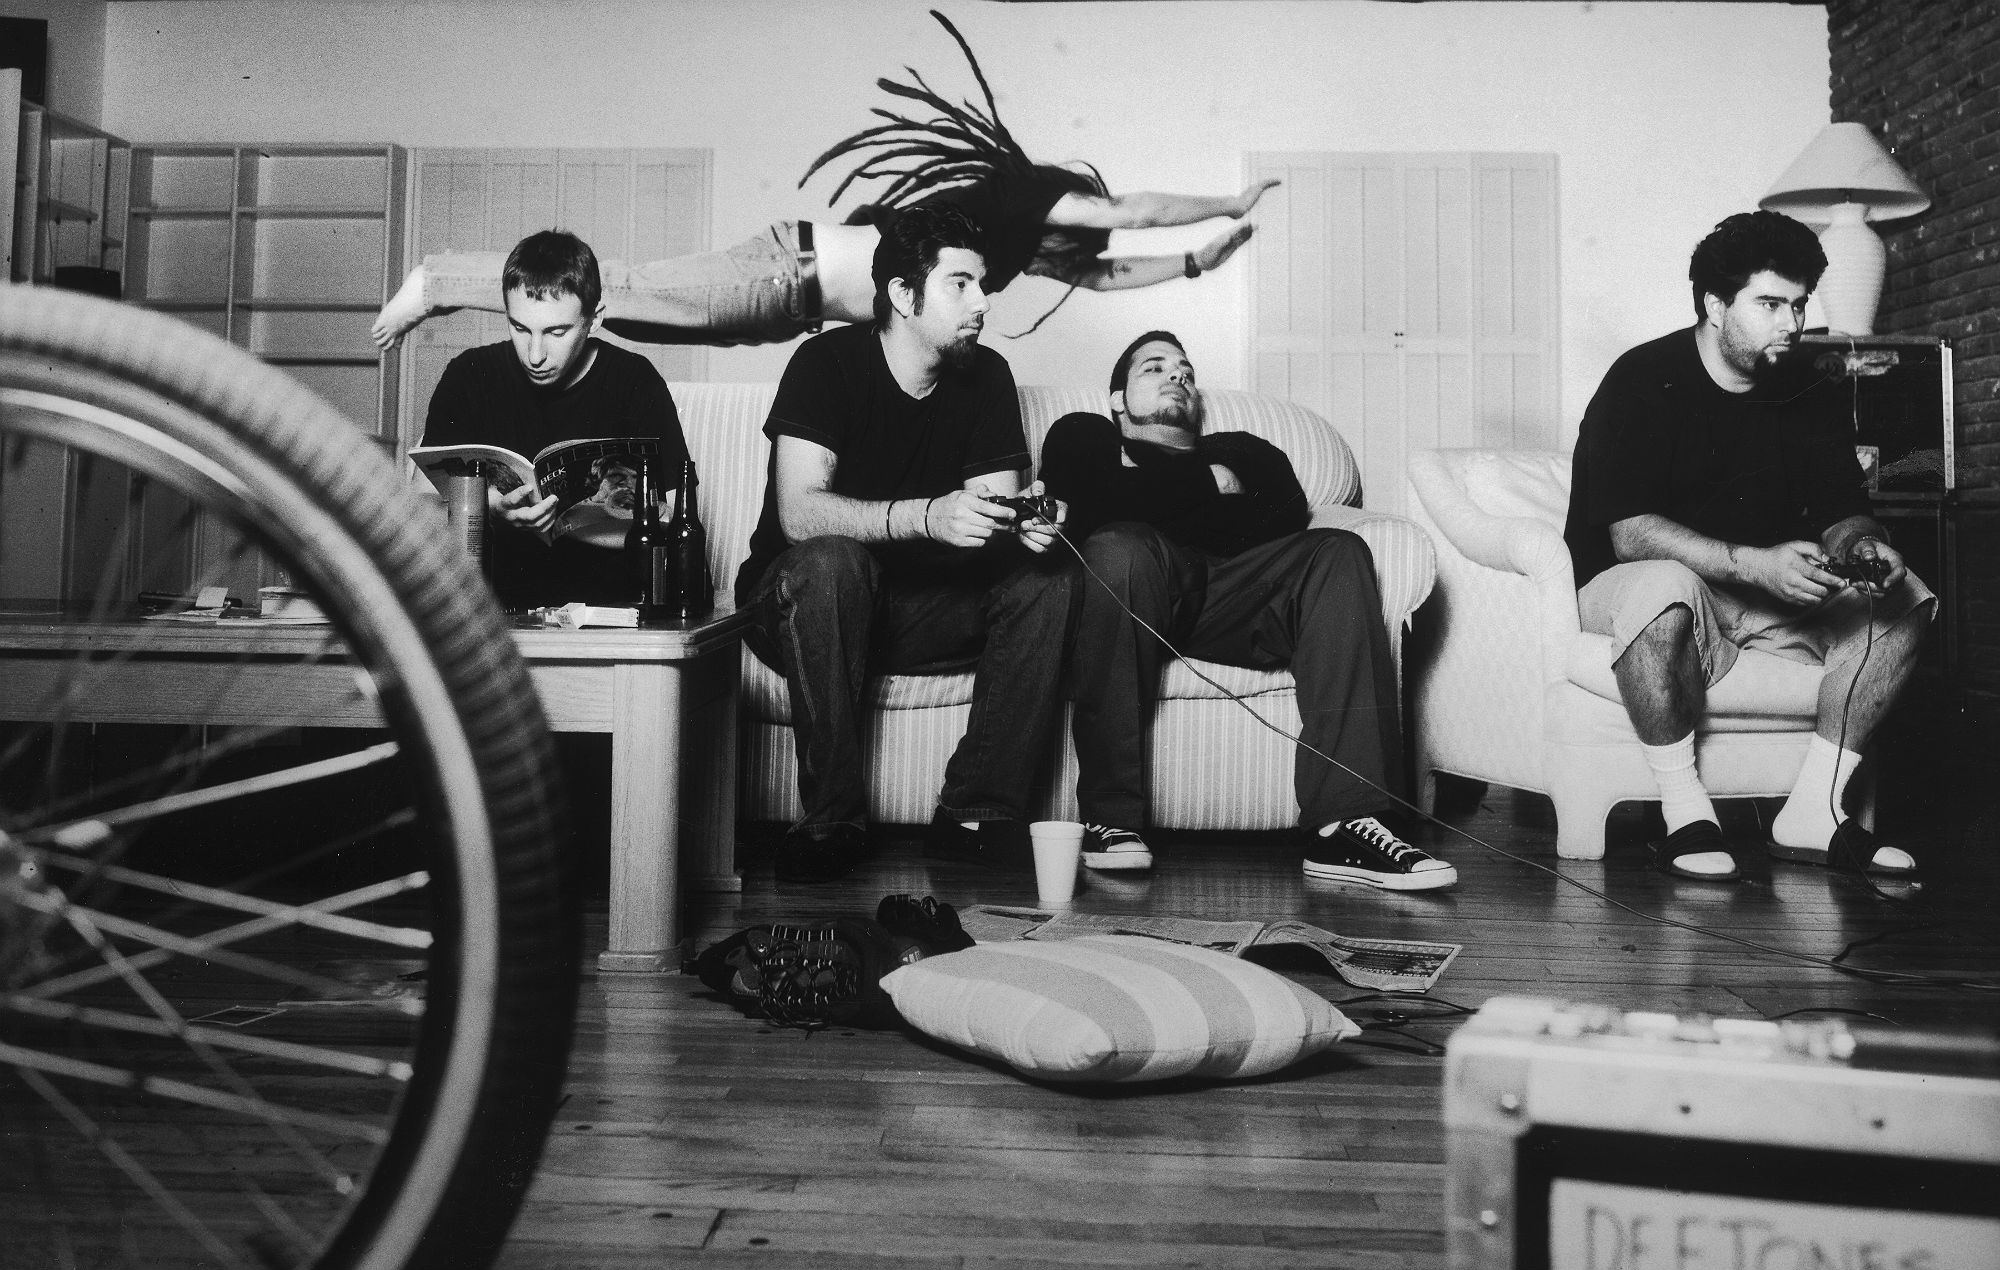 Deftones in 2000. Credit: James Minchin III